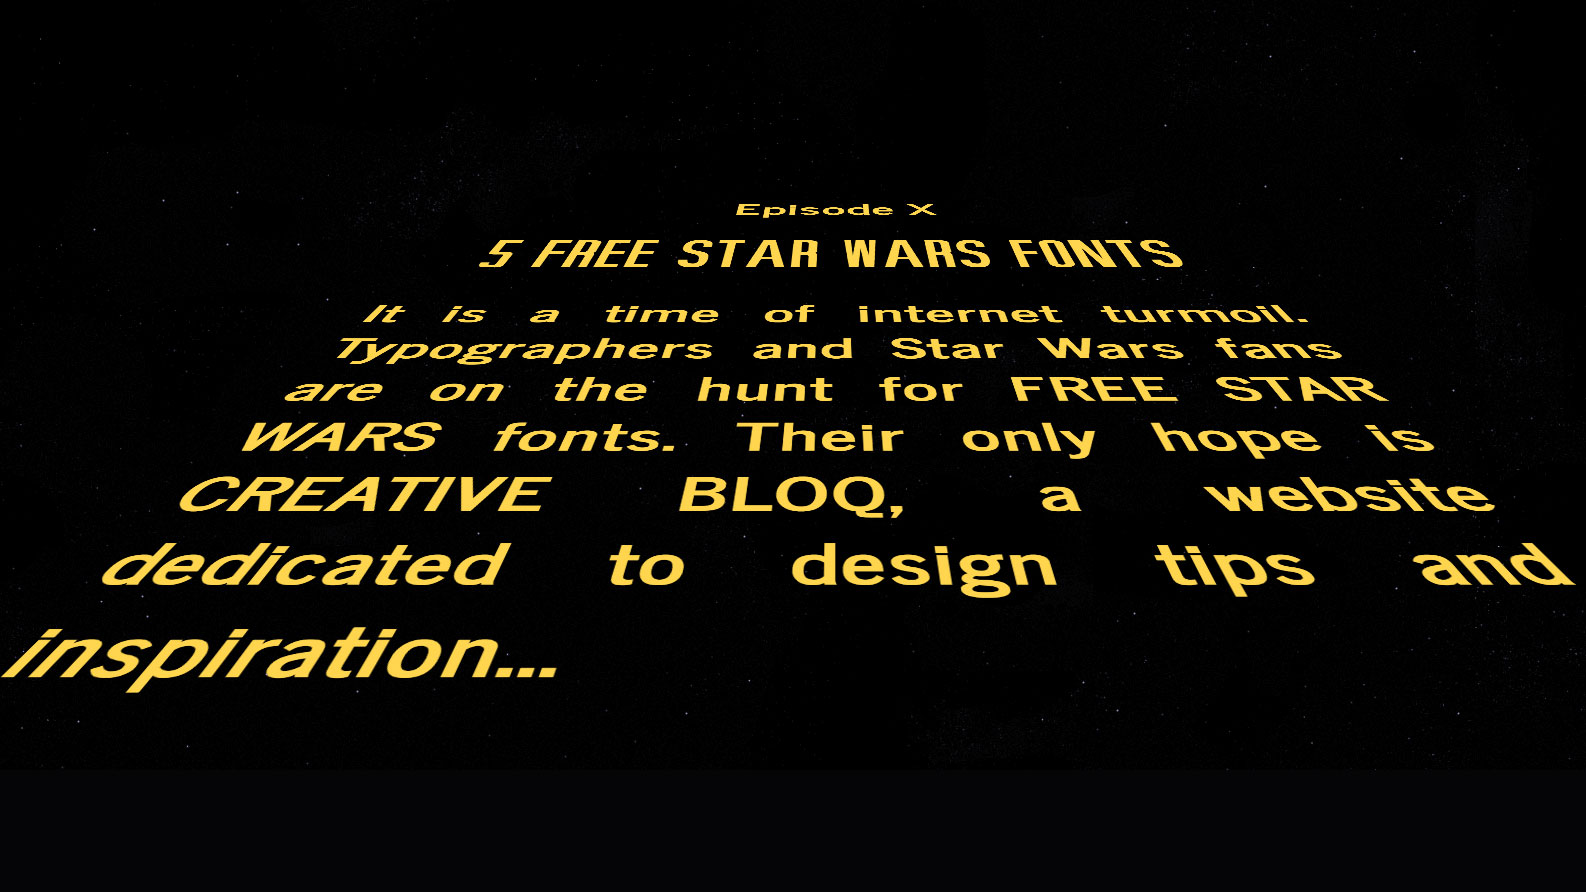 5 free star wars fonts creative bloq